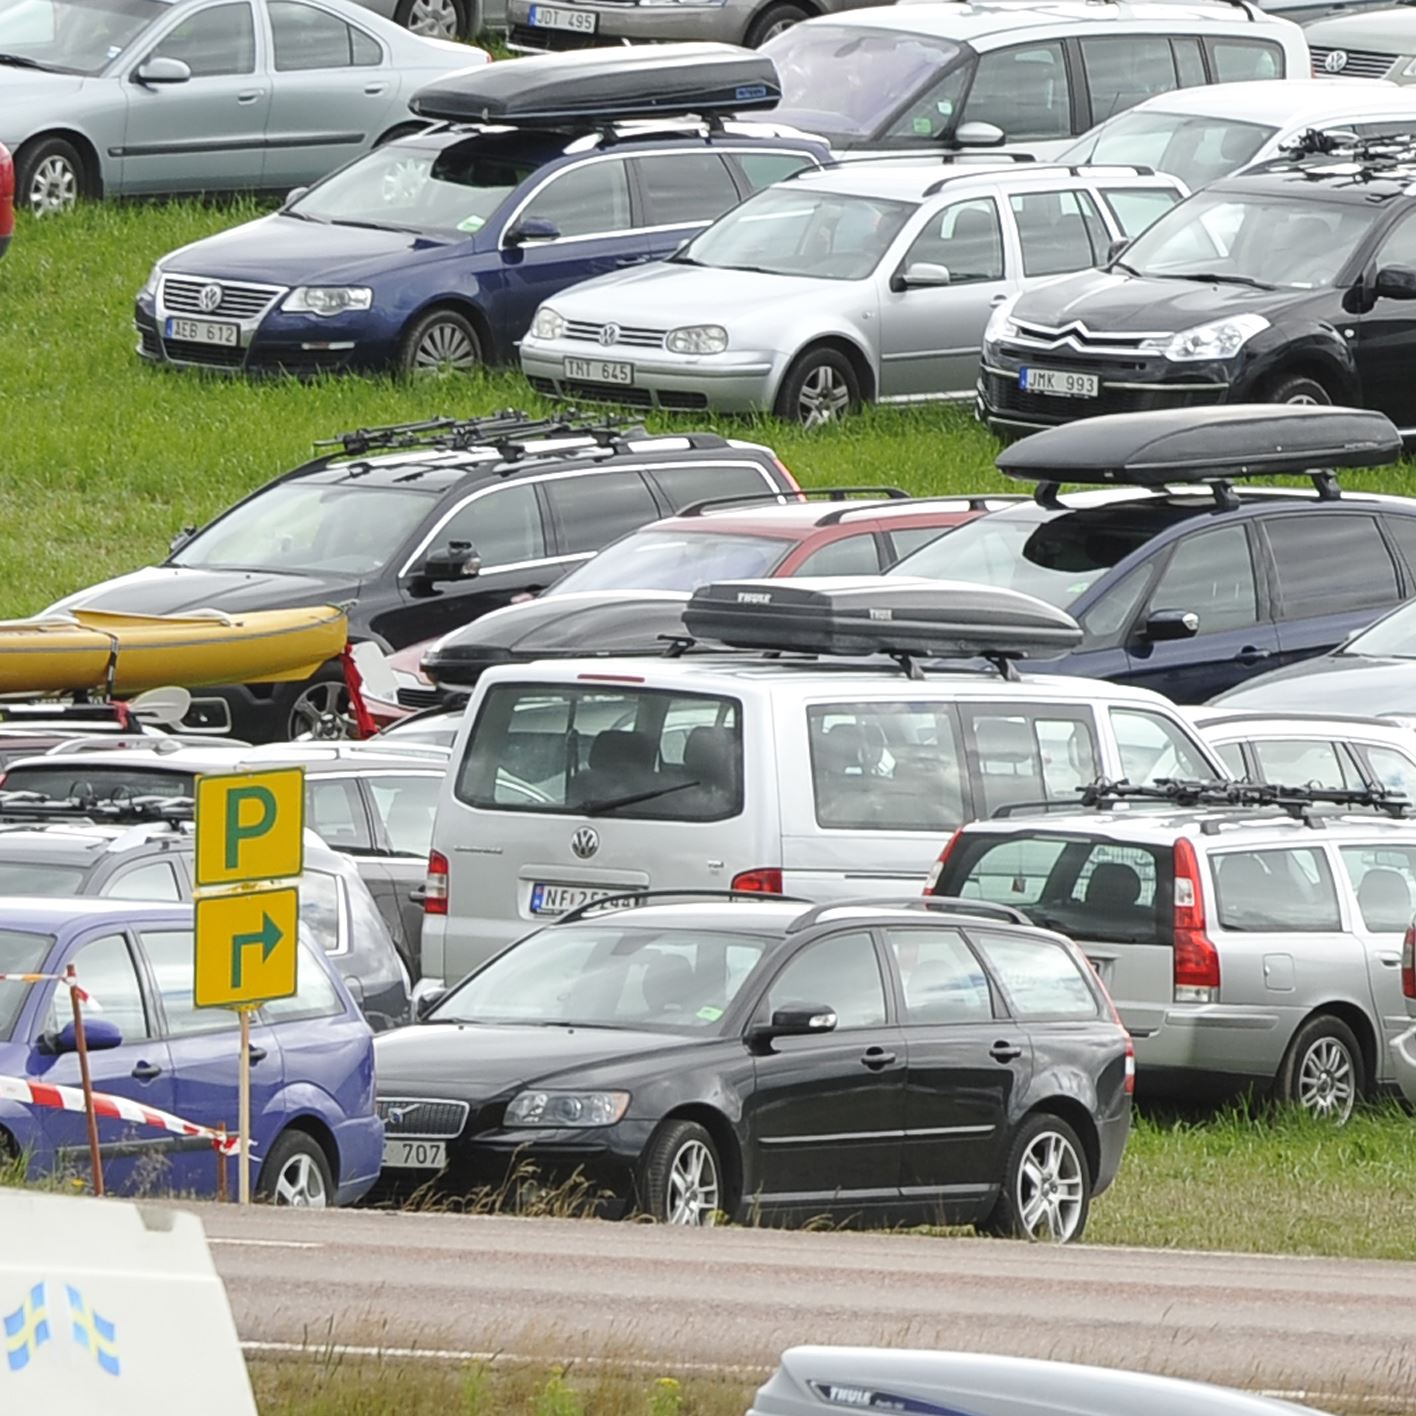 Car parking at Foot O arenas